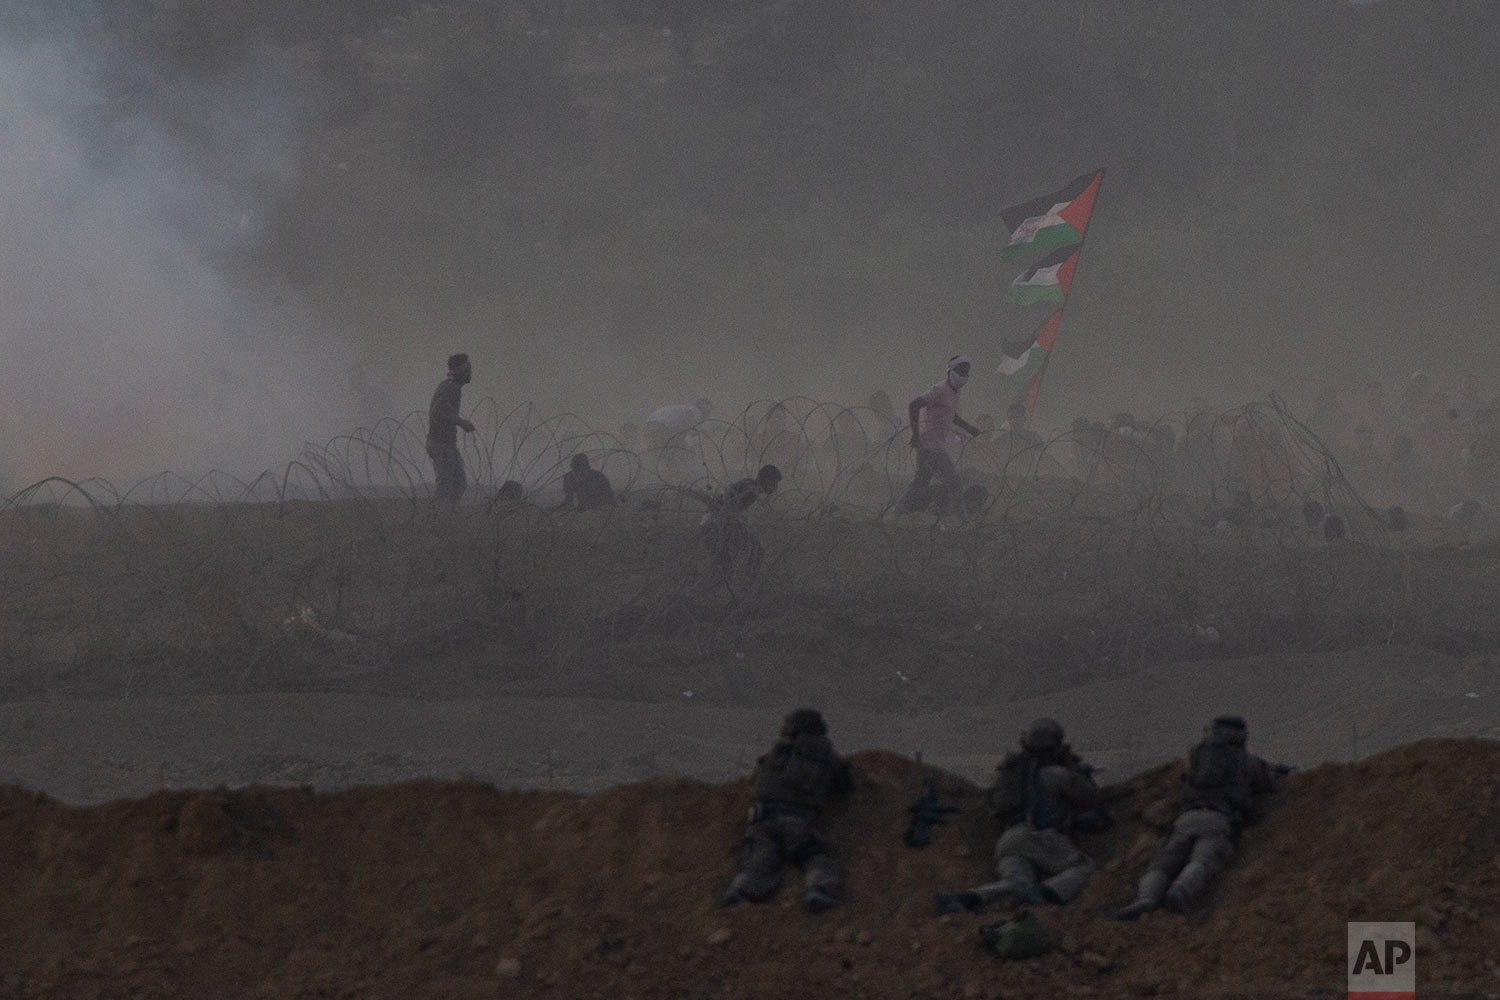 Israeli soldiers are positioned on a sand berm as Palestinian protesters run during a protest along the Israel Gaza border in Israel, Friday, Oct. 19, 2018. (AP Photo/Ariel Schalit)